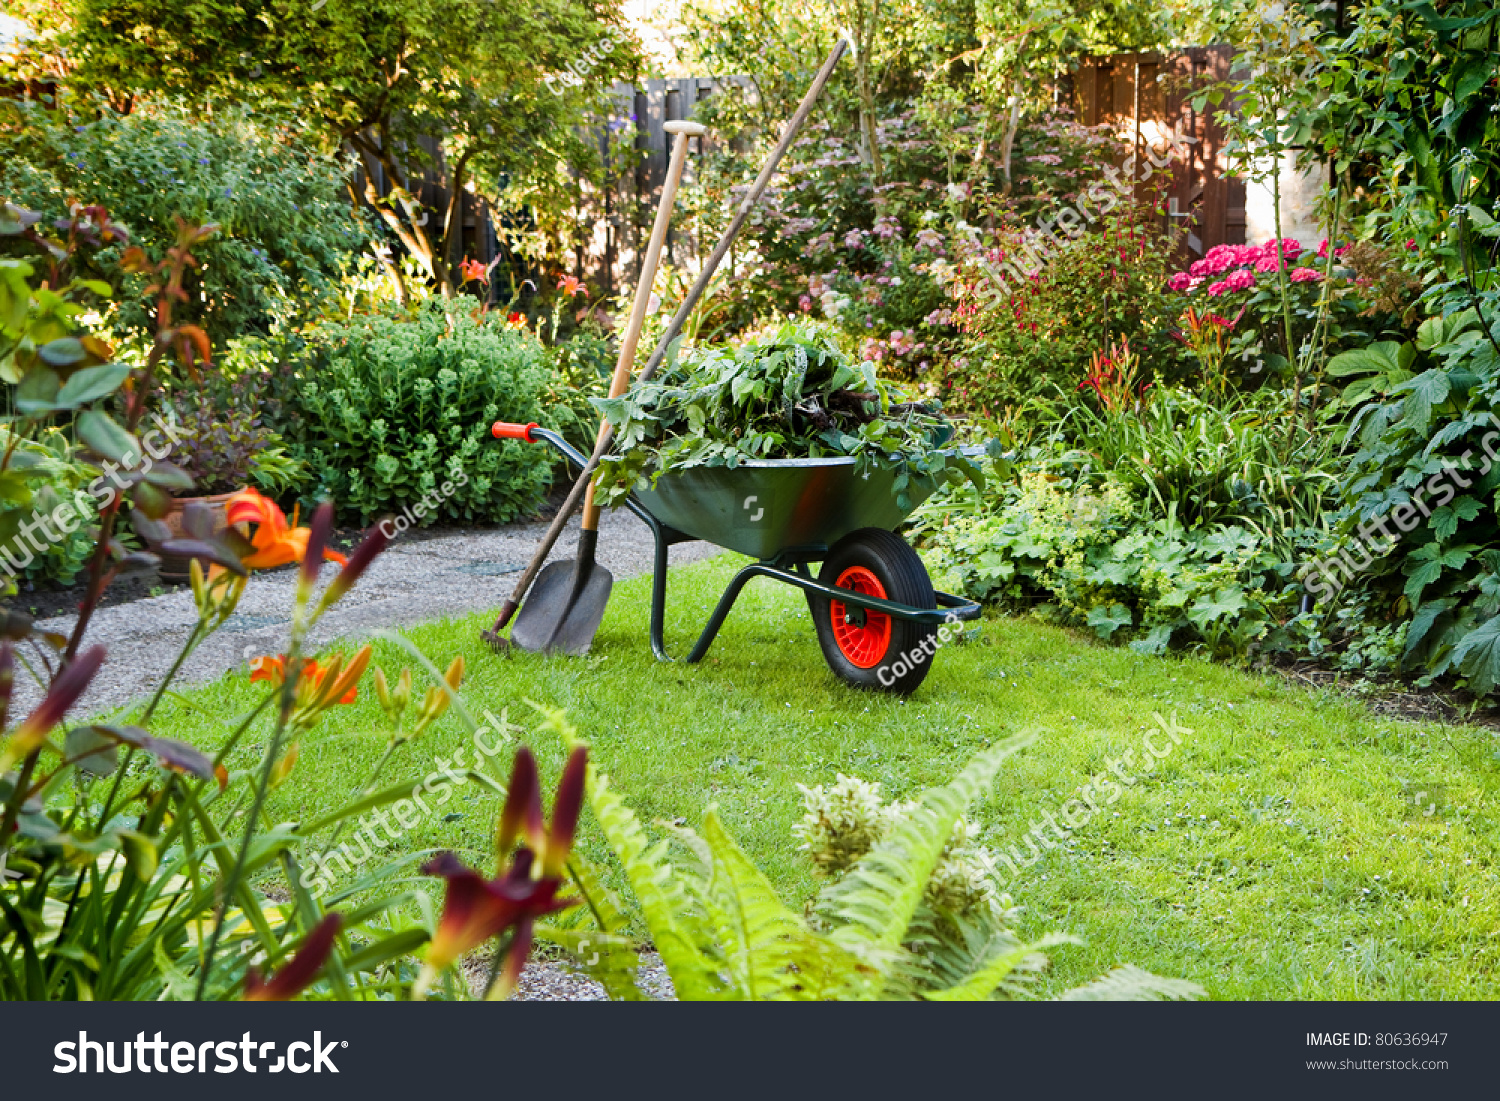 Evening After Work In Summer Garden With Wheelbarrow